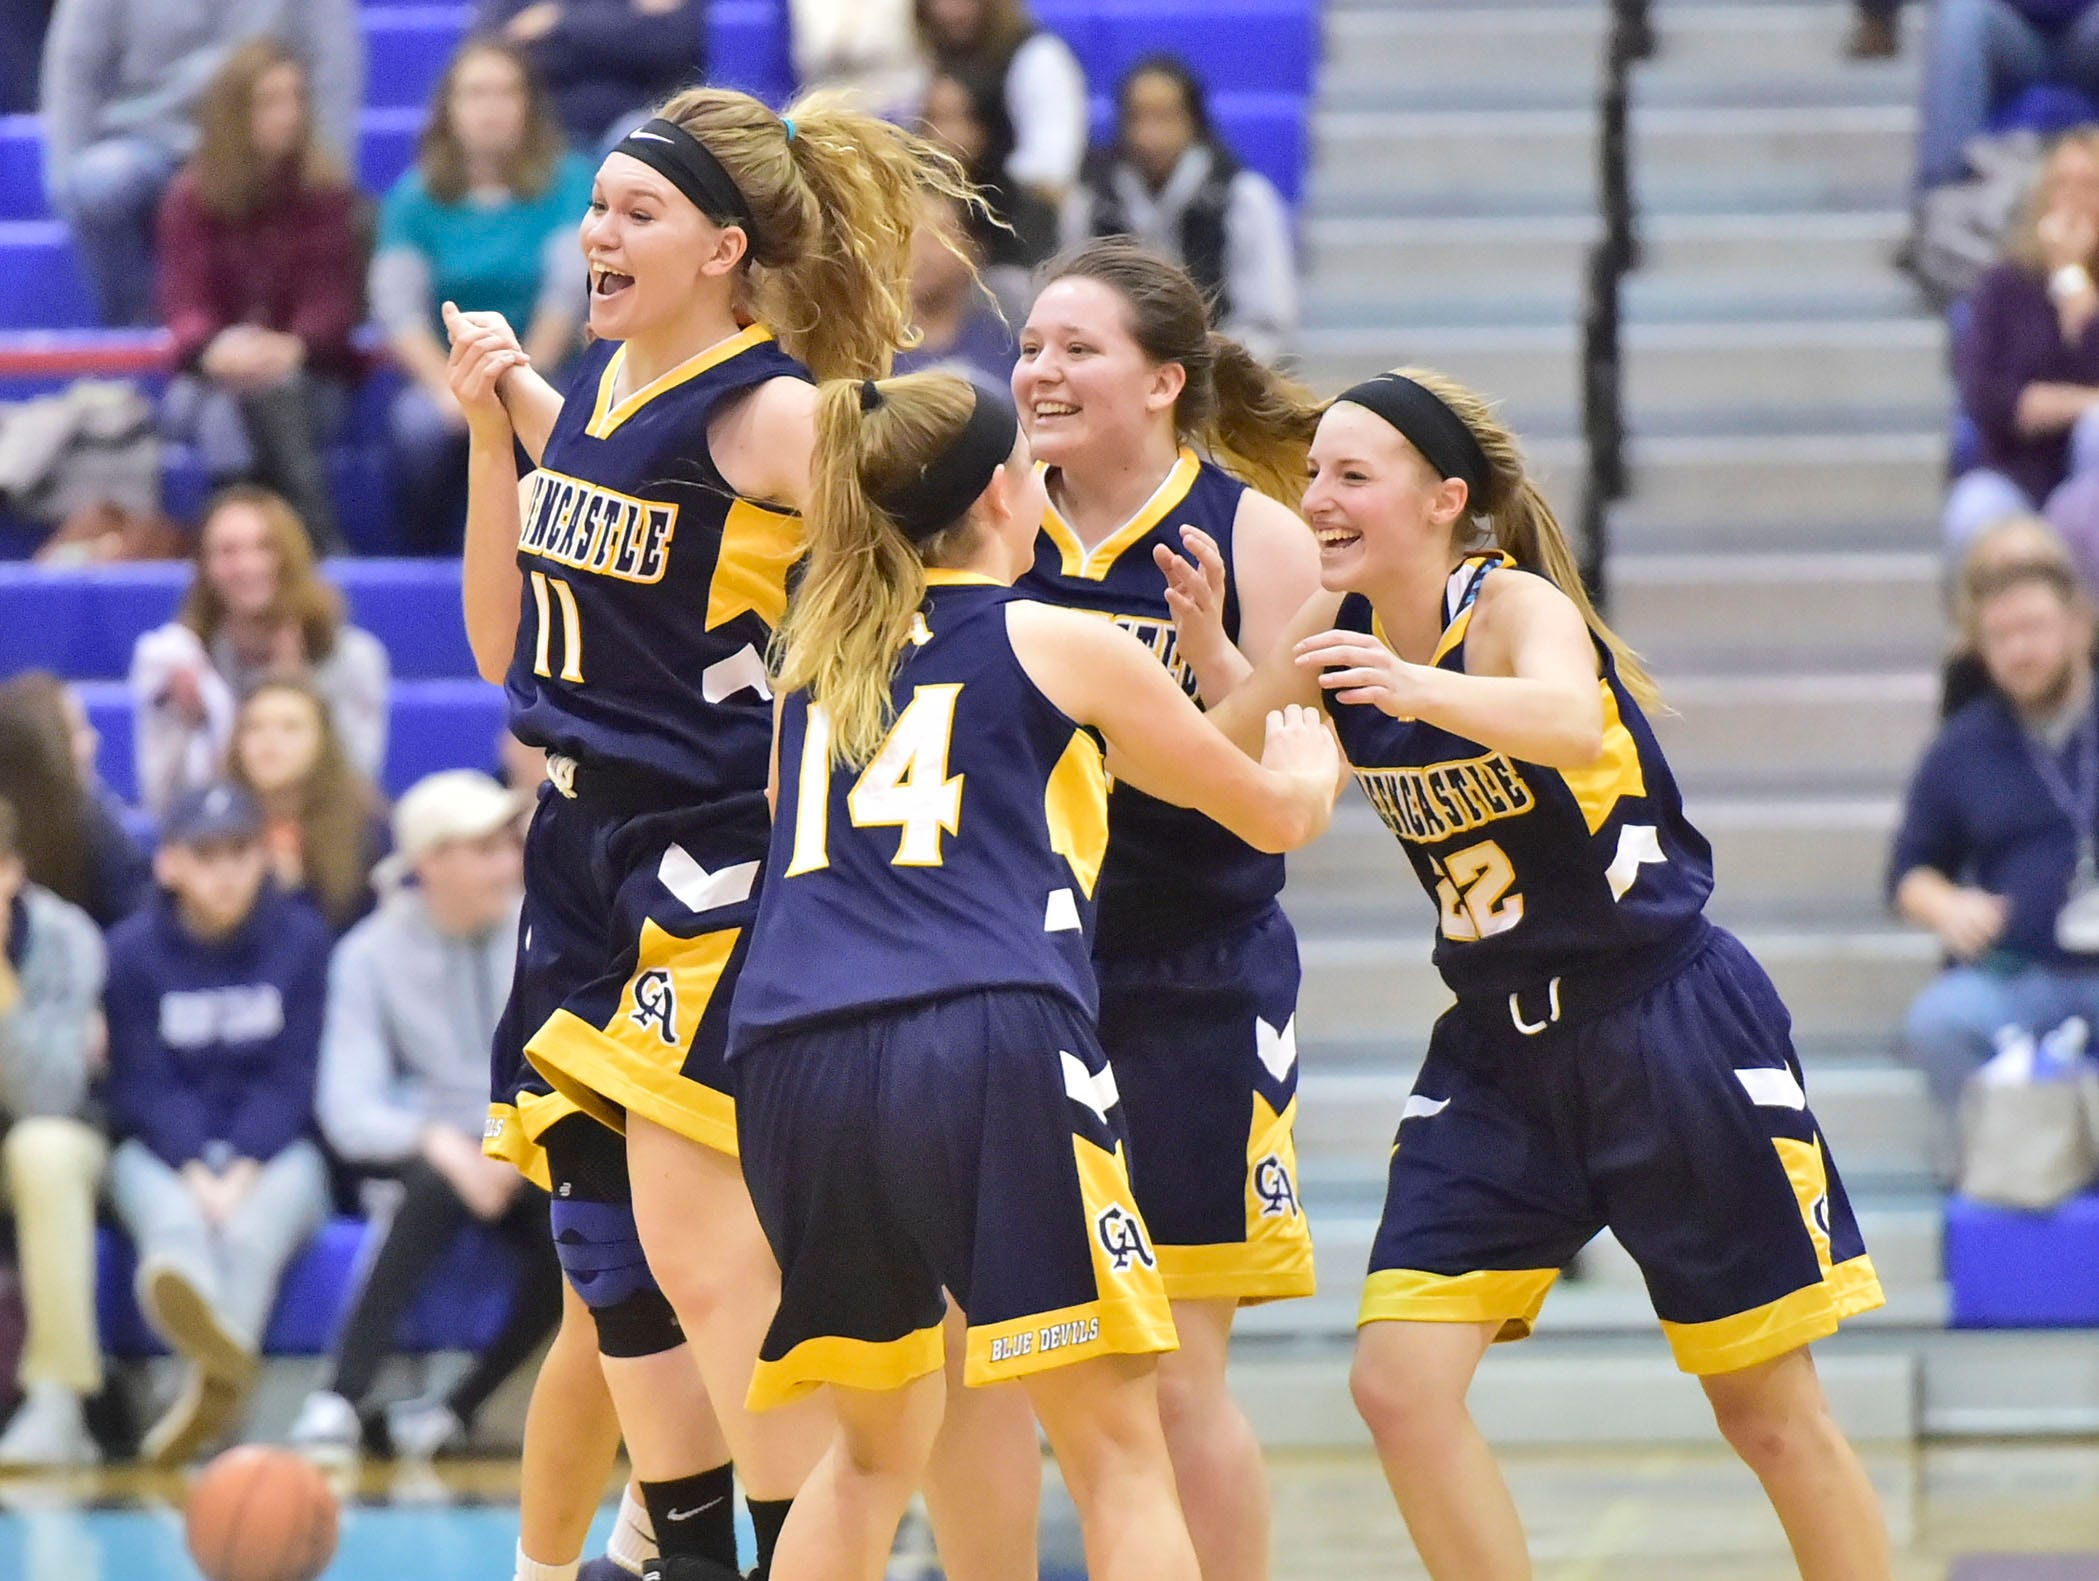 Greencastle defeated Chambersburg 26-22 during the finals at Franklin County Tip-Off Tournament, Saturday, Dec. 8, 2018.